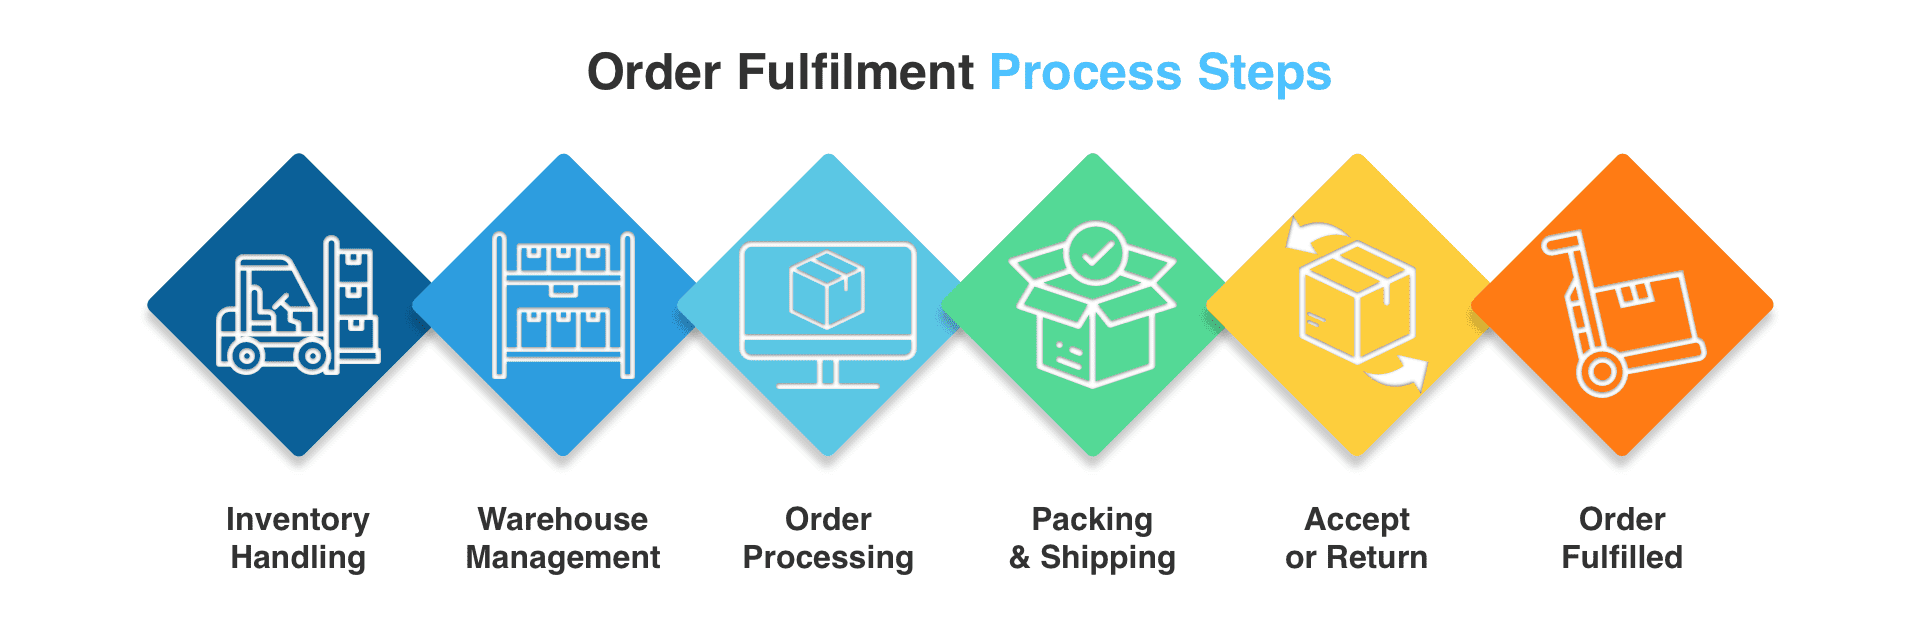 fulfillment management software